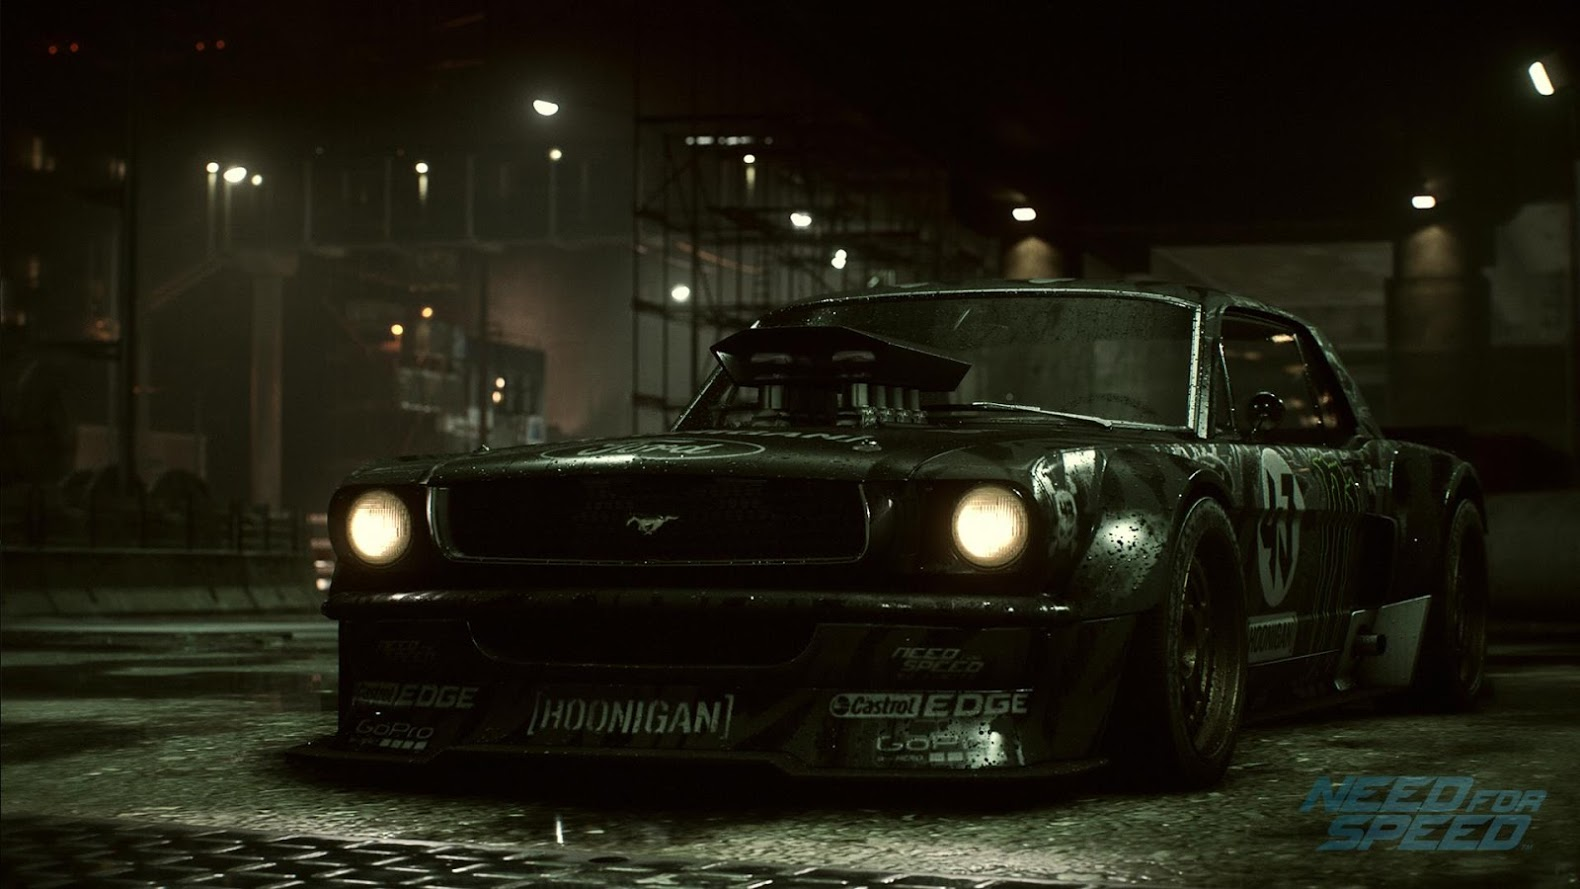 1965 Ford Mustang (Hoonicorn) Computer Wallpapers, Desktop Backgrounds ...